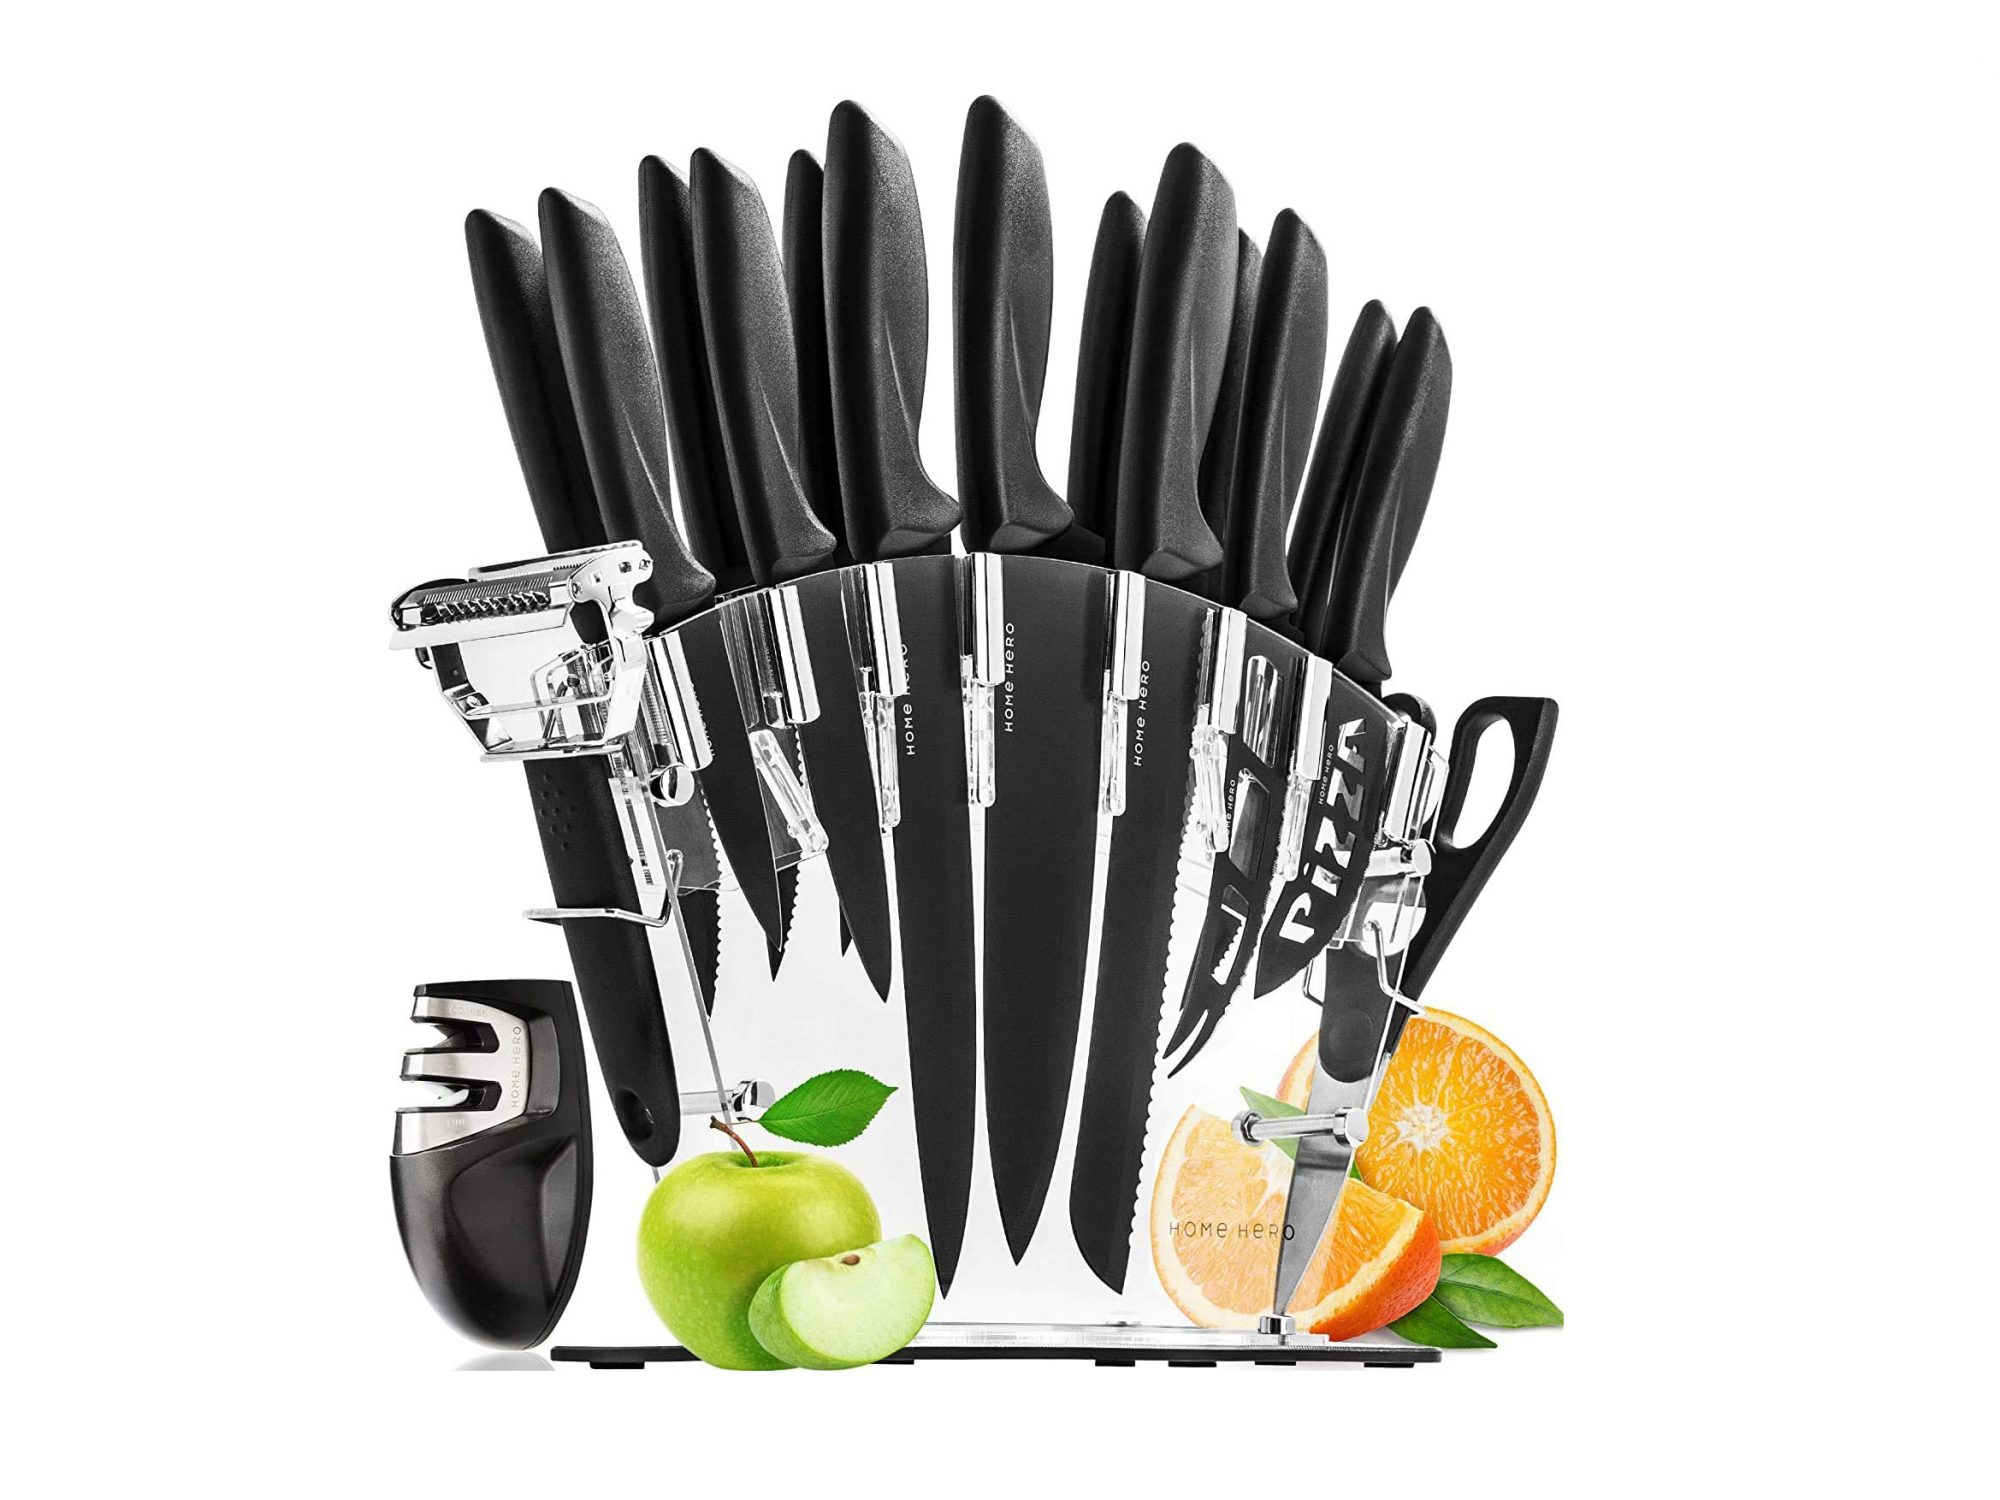 Home Hero Stainless Steel 17 Piece Knife Set with Block